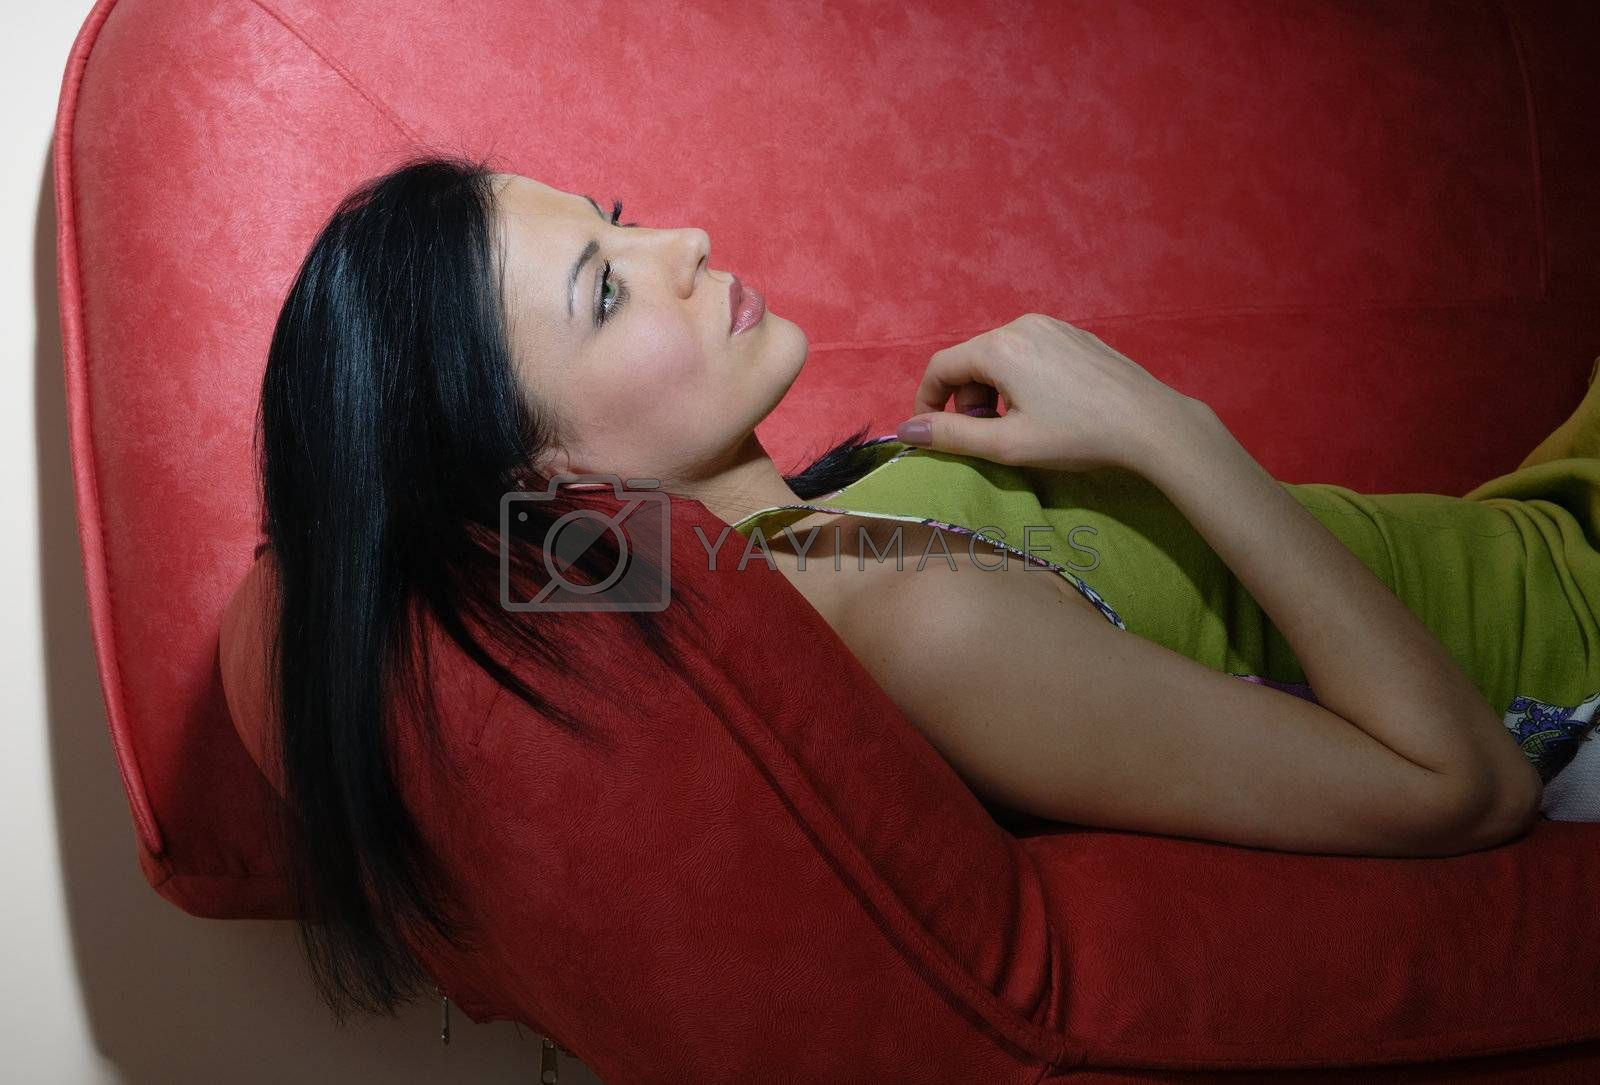 Portrait of the resting lady laying on the red sofa